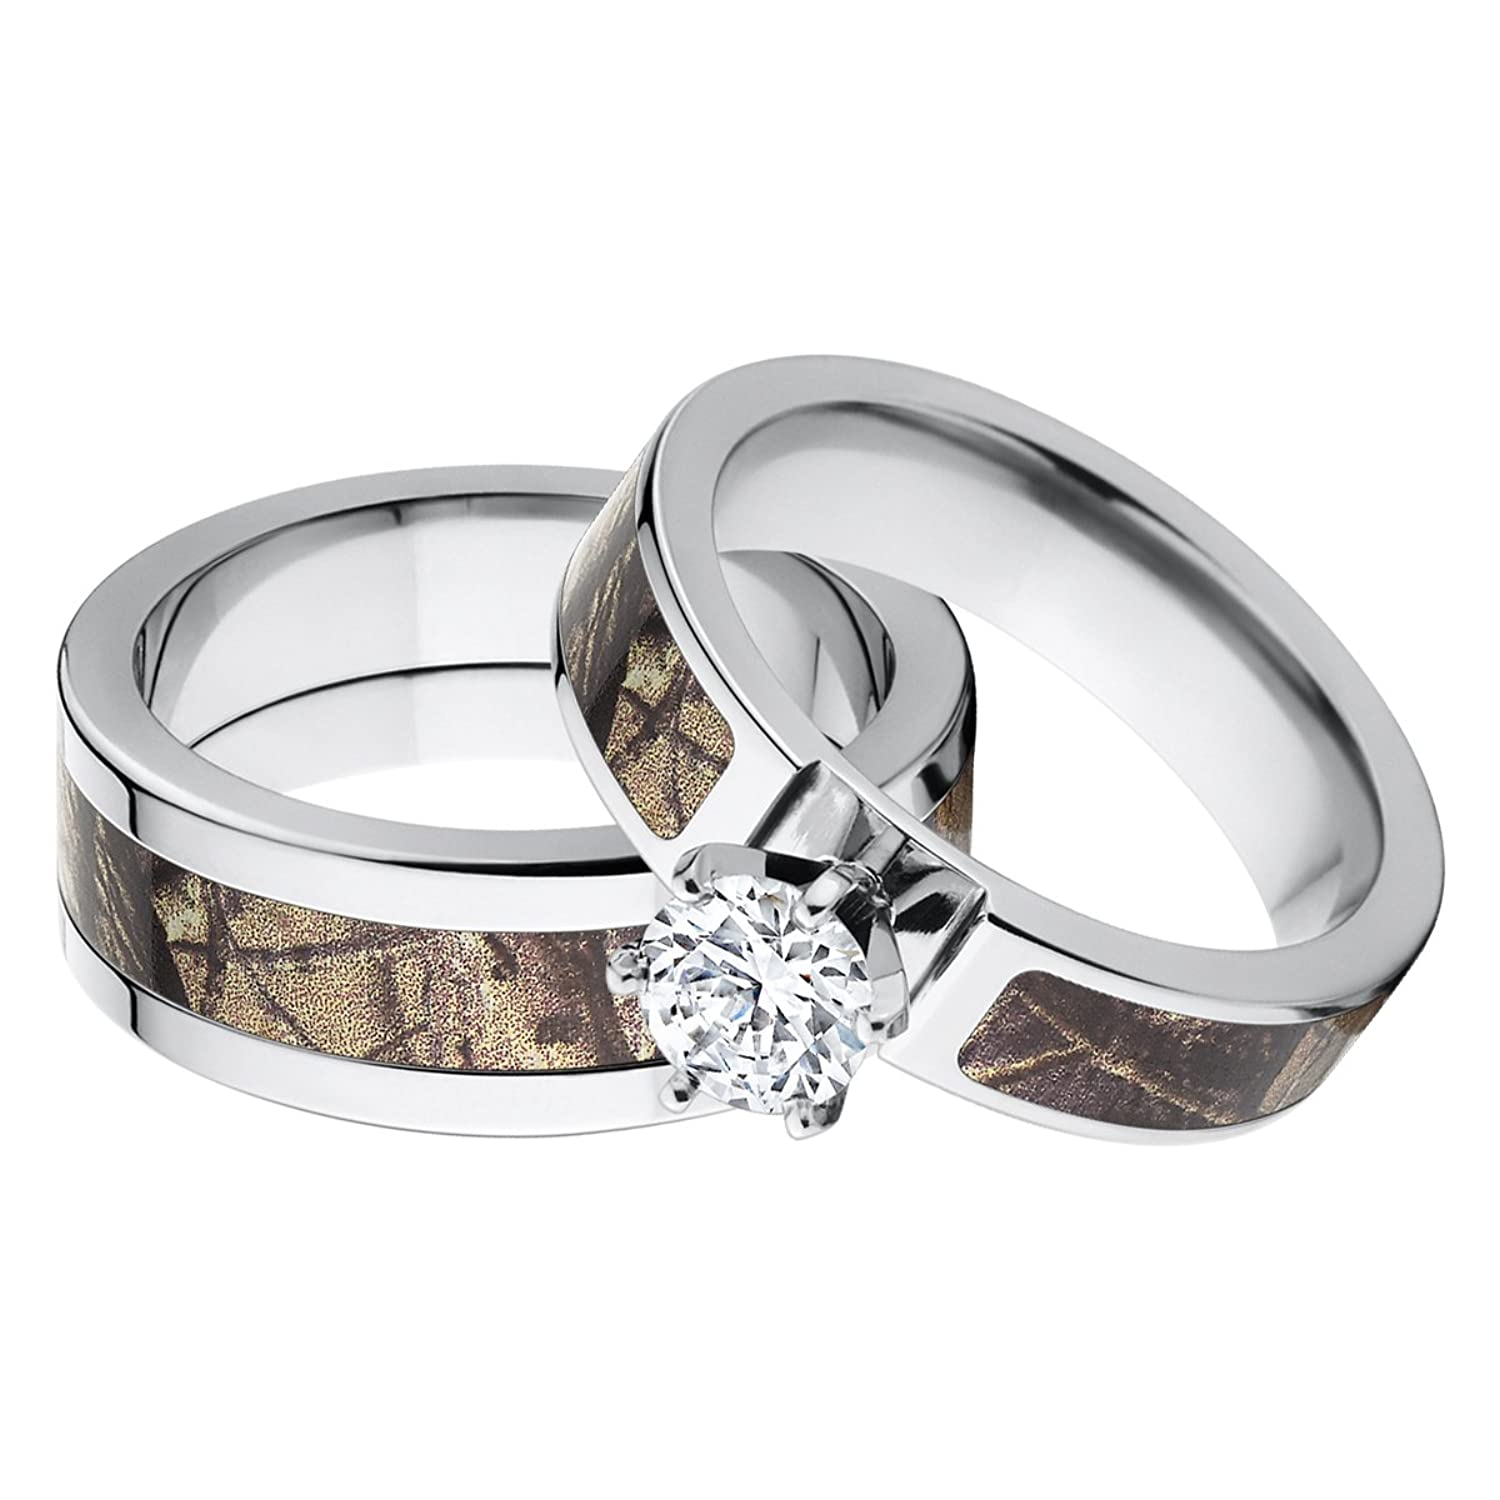 amazoncom his and hers matching realtree ap camouflage wedding ring set jewelry - Camo Wedding Ring Sets